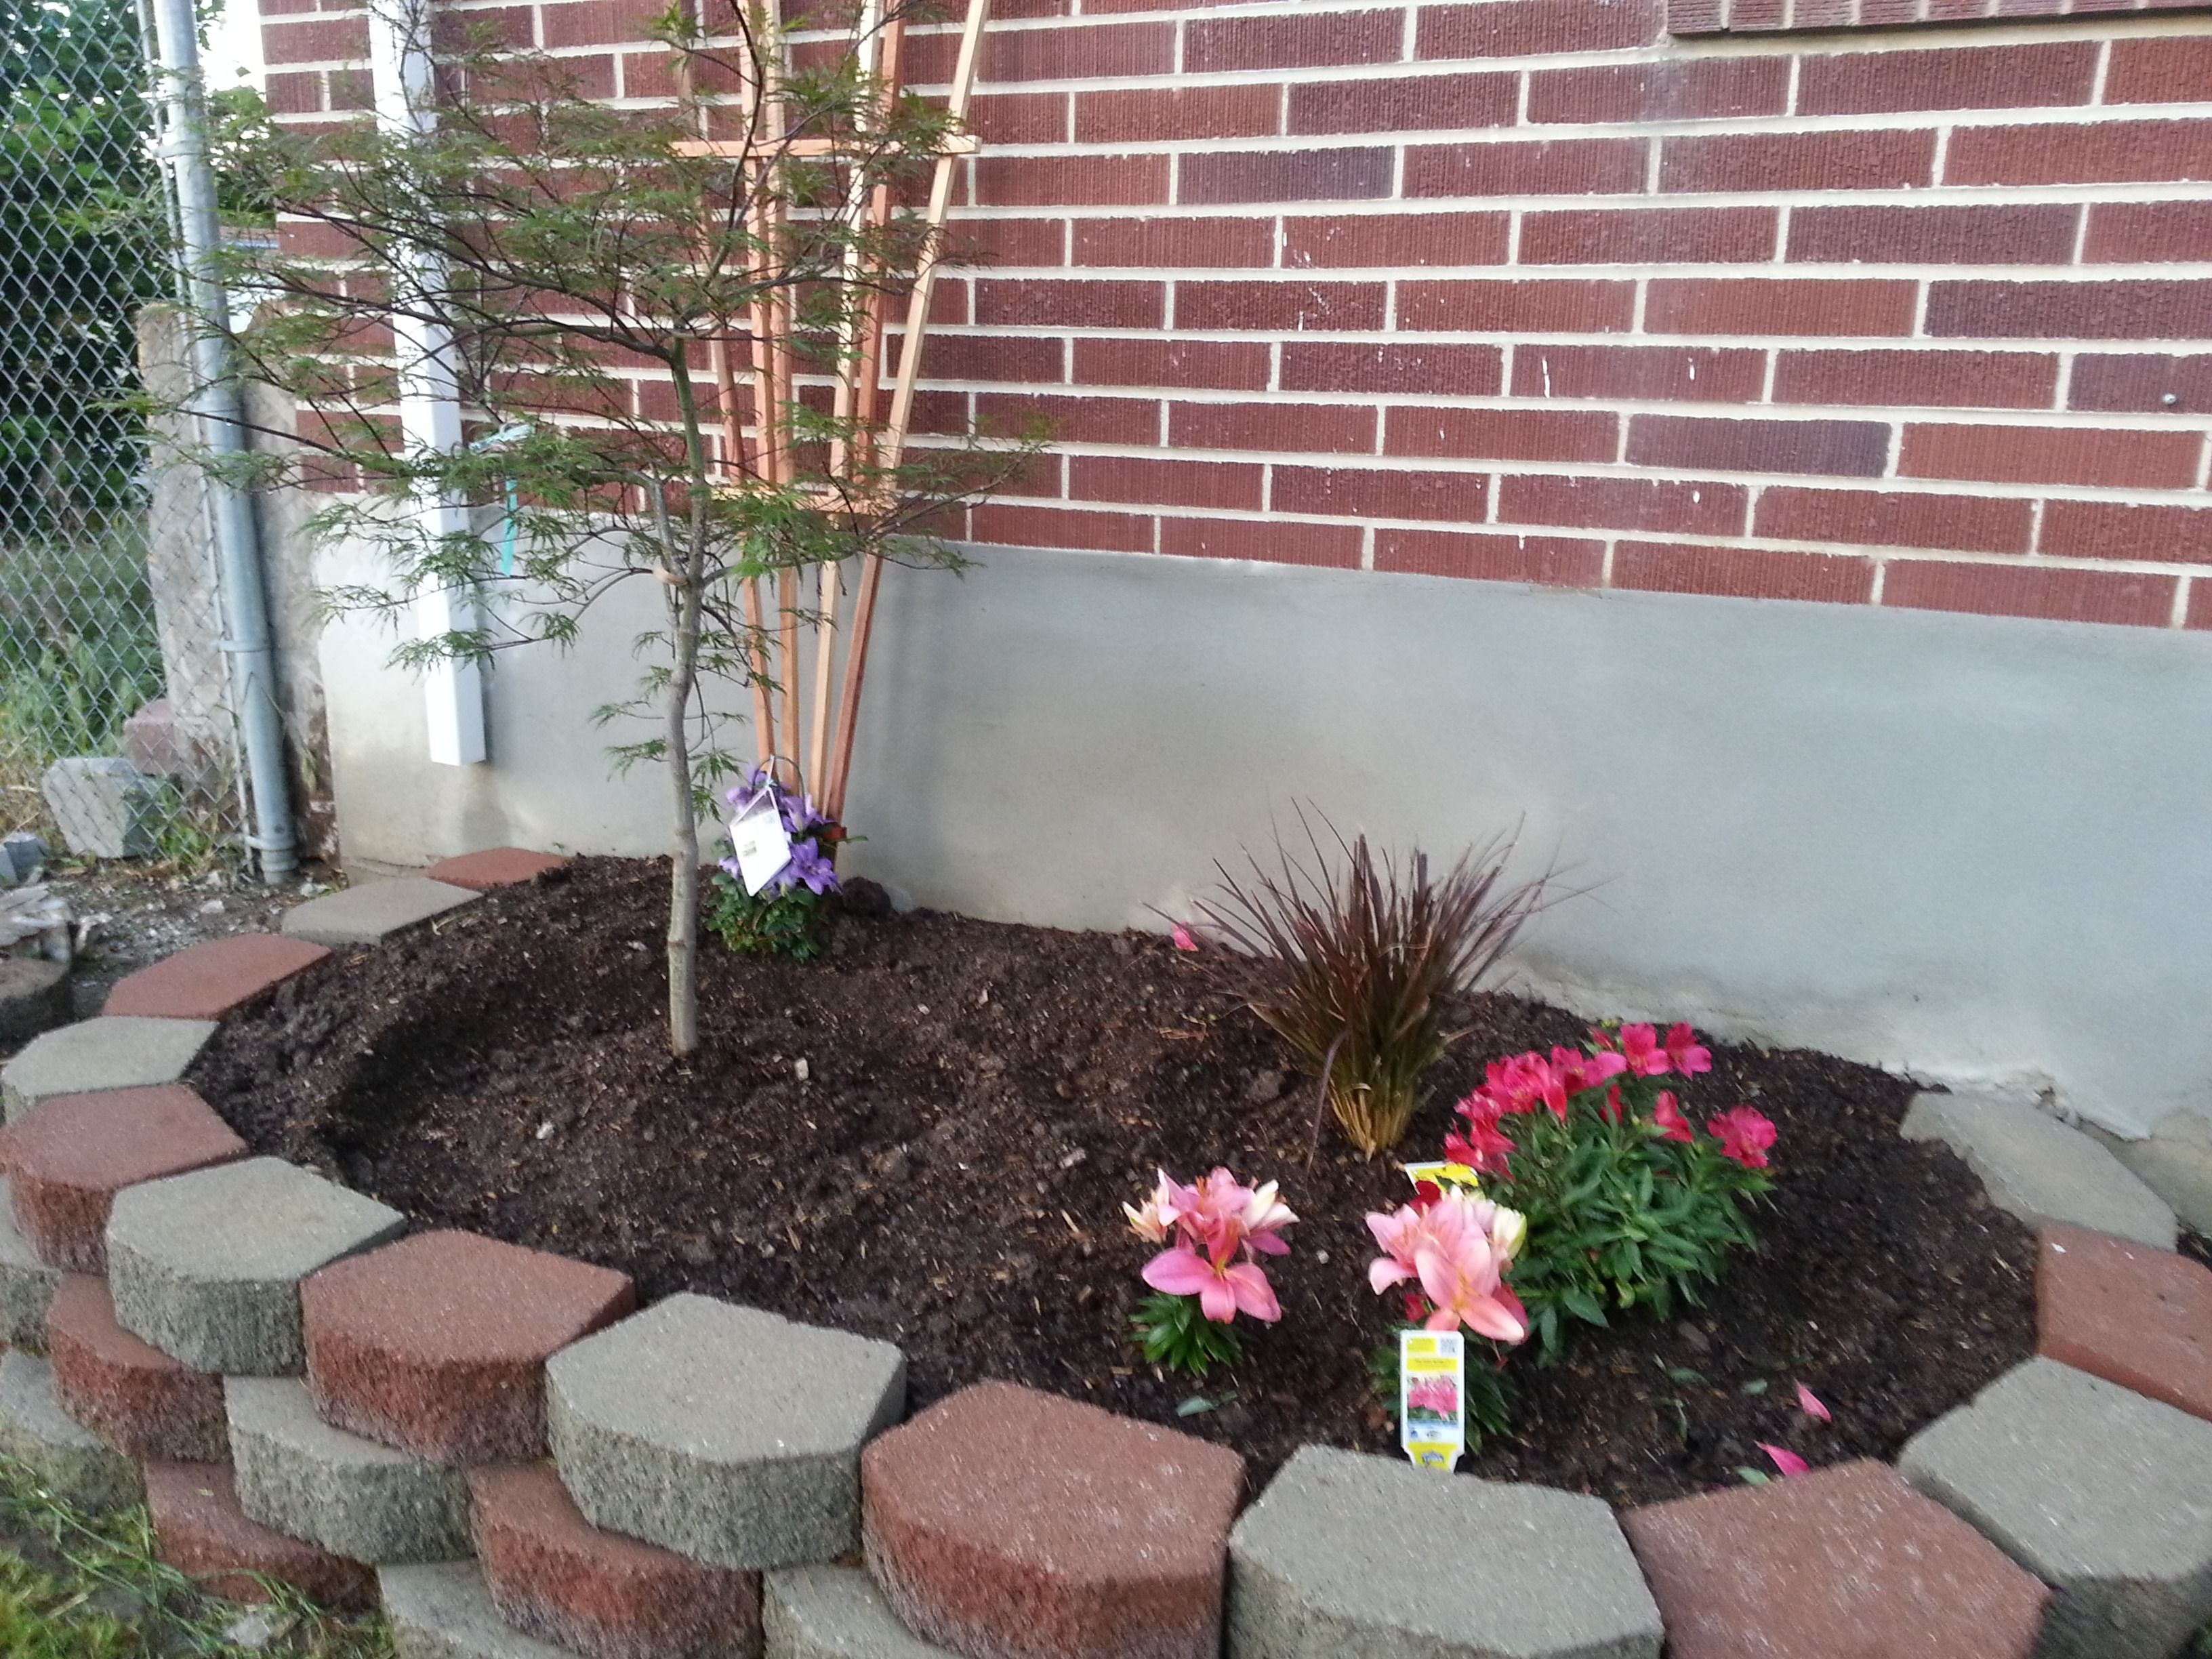 Flower bed makeover (AFTER) - added decorative trellis to soften wall, wood chips, perennials, and lace leaf japanese maple